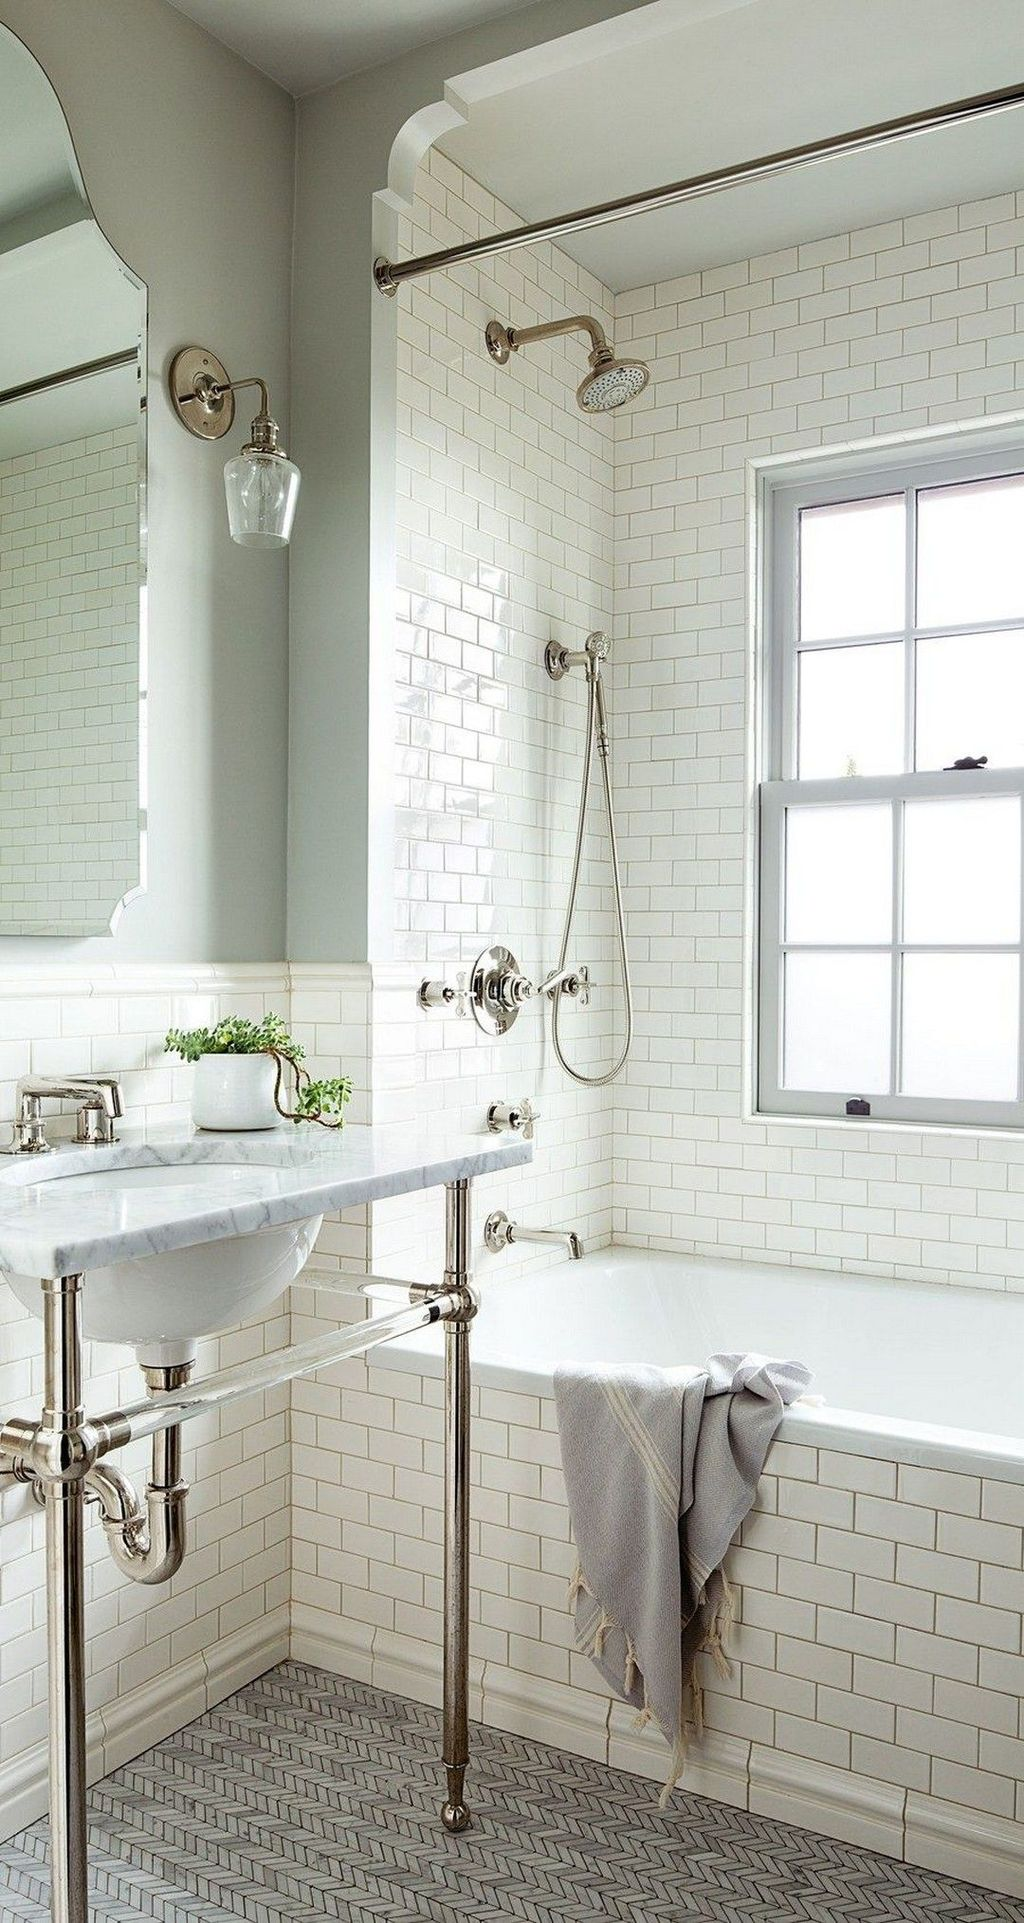 Amazing White Tile Bathroom Design Ideas Looks Elegant 02